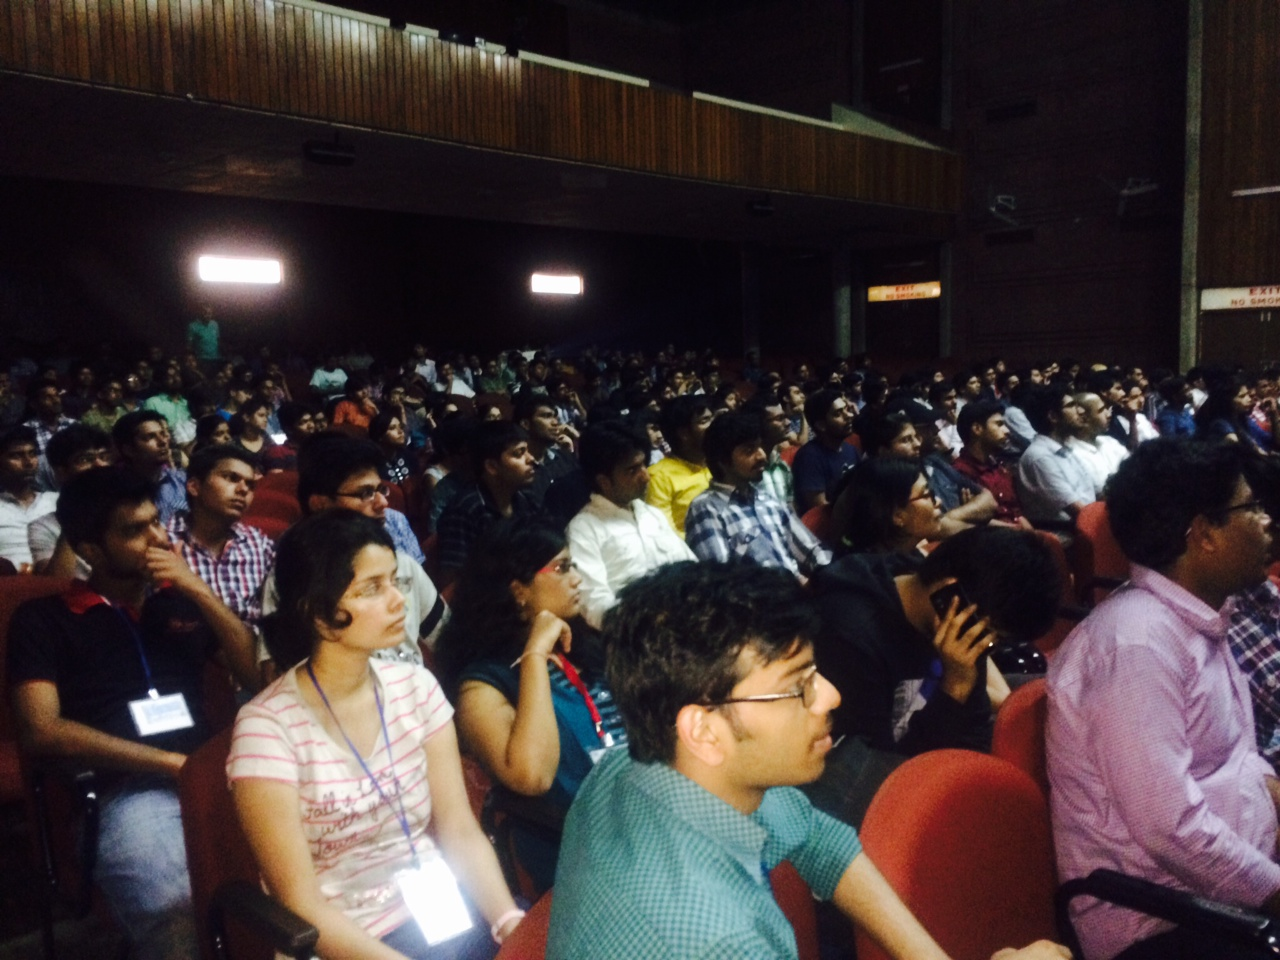 IIT Kanpur lecture audience 032115